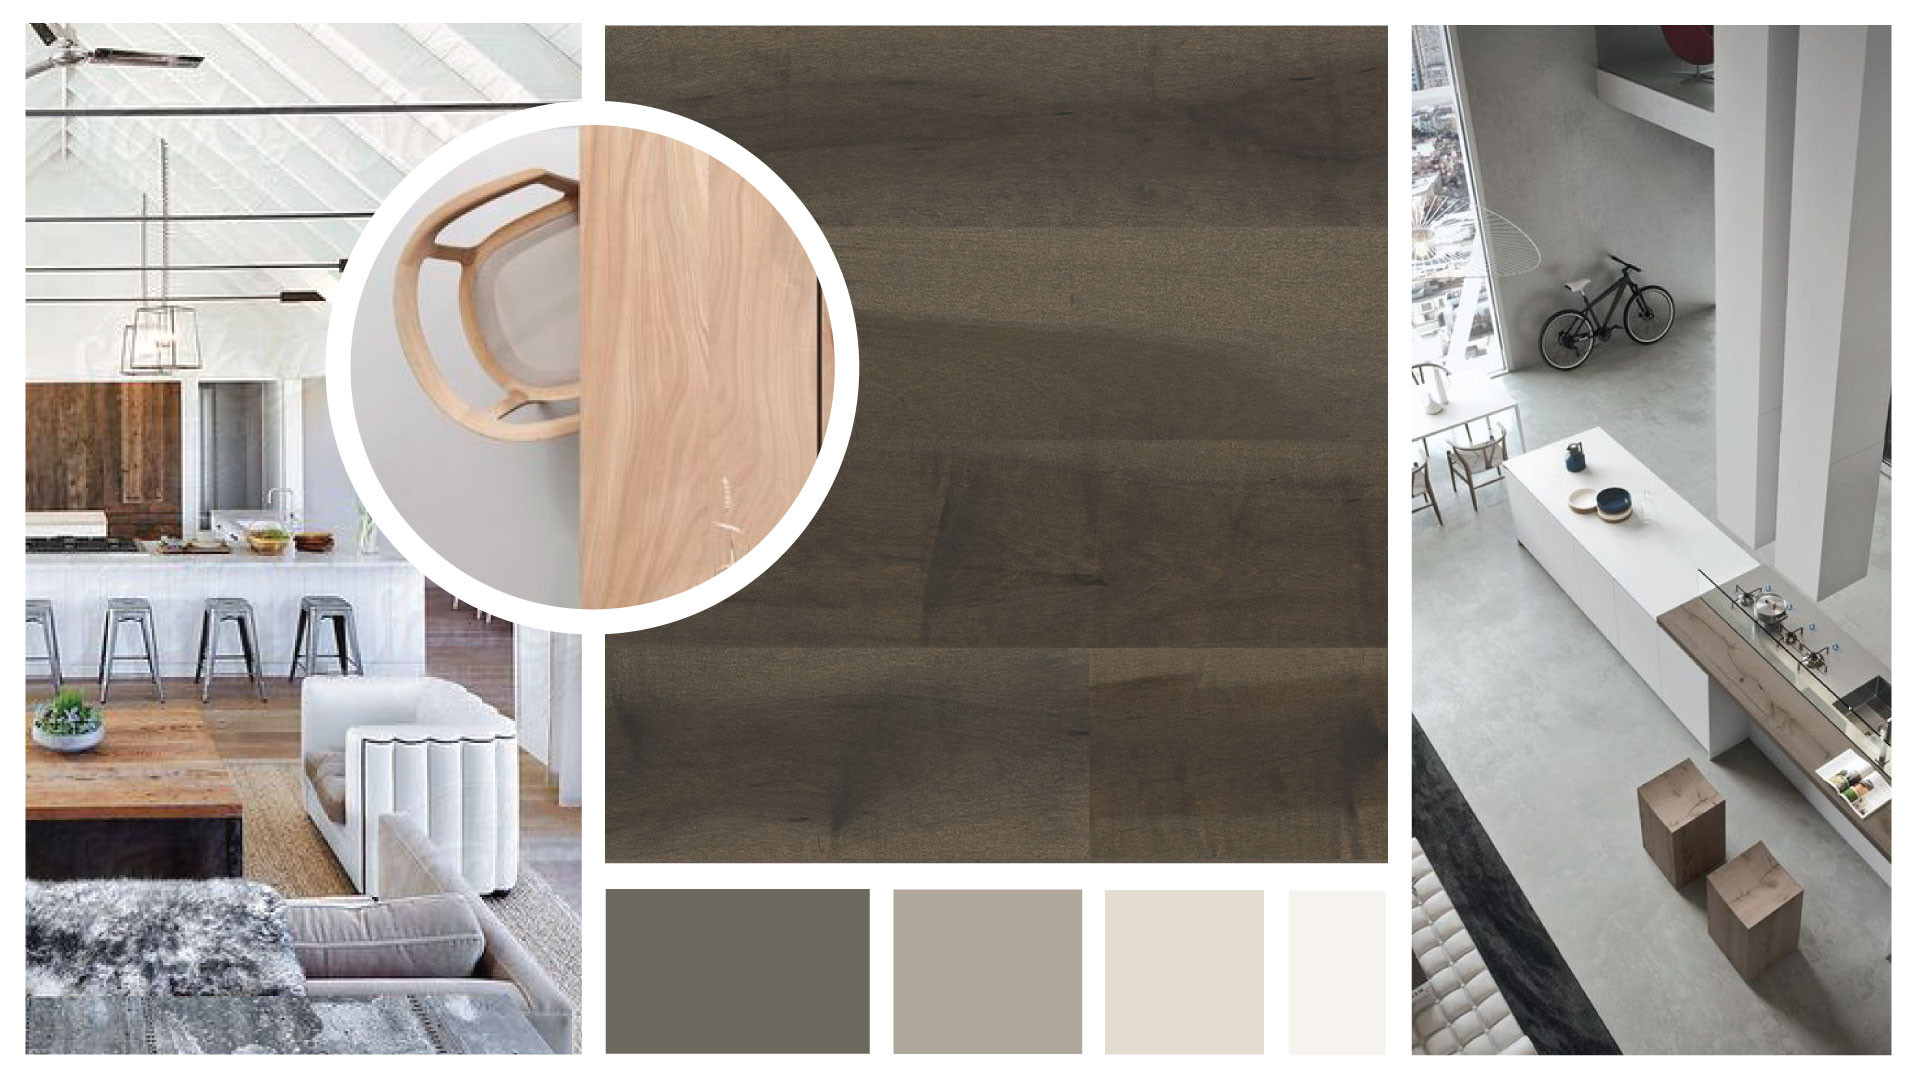 trending hardwood floor colors 2017 of 4 latest hardwood flooring trends lauzon flooring pertaining to for the family centric great room where natural hardwood flooring unifies the kitchen family and dining rooms into a single welcoming living space